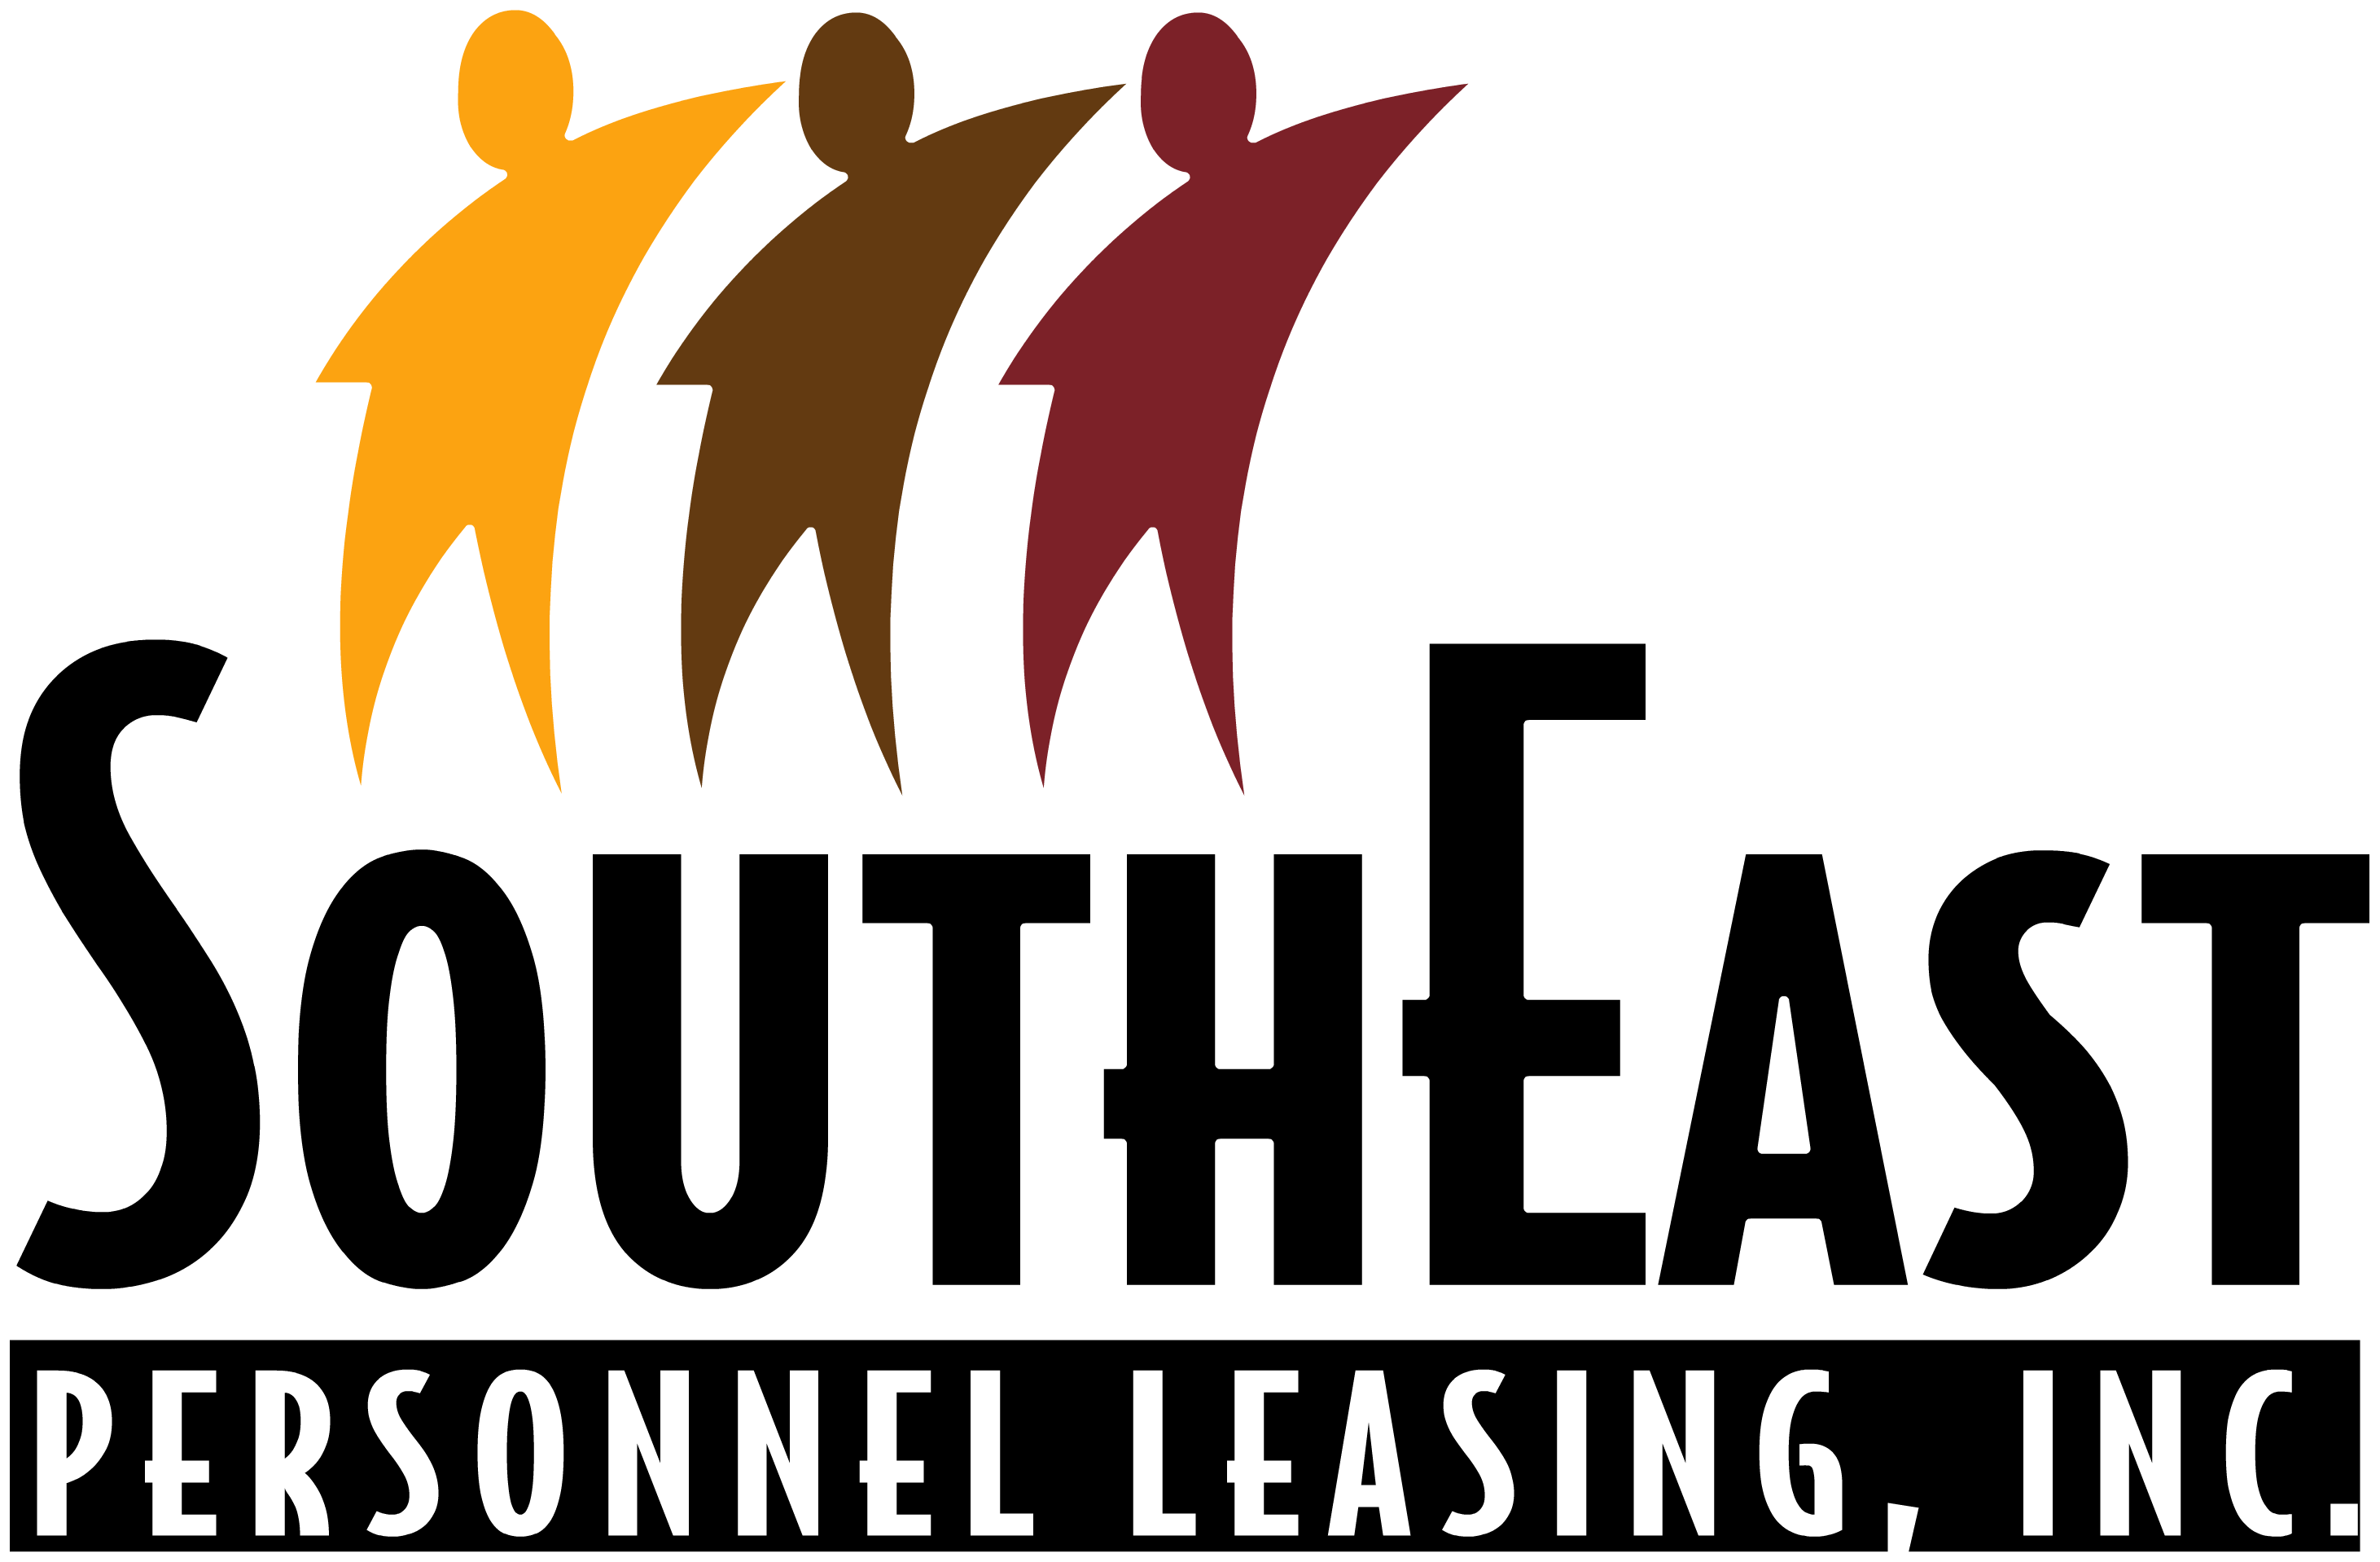 SouthEast Personnel Leasing, Inc. Company Logo